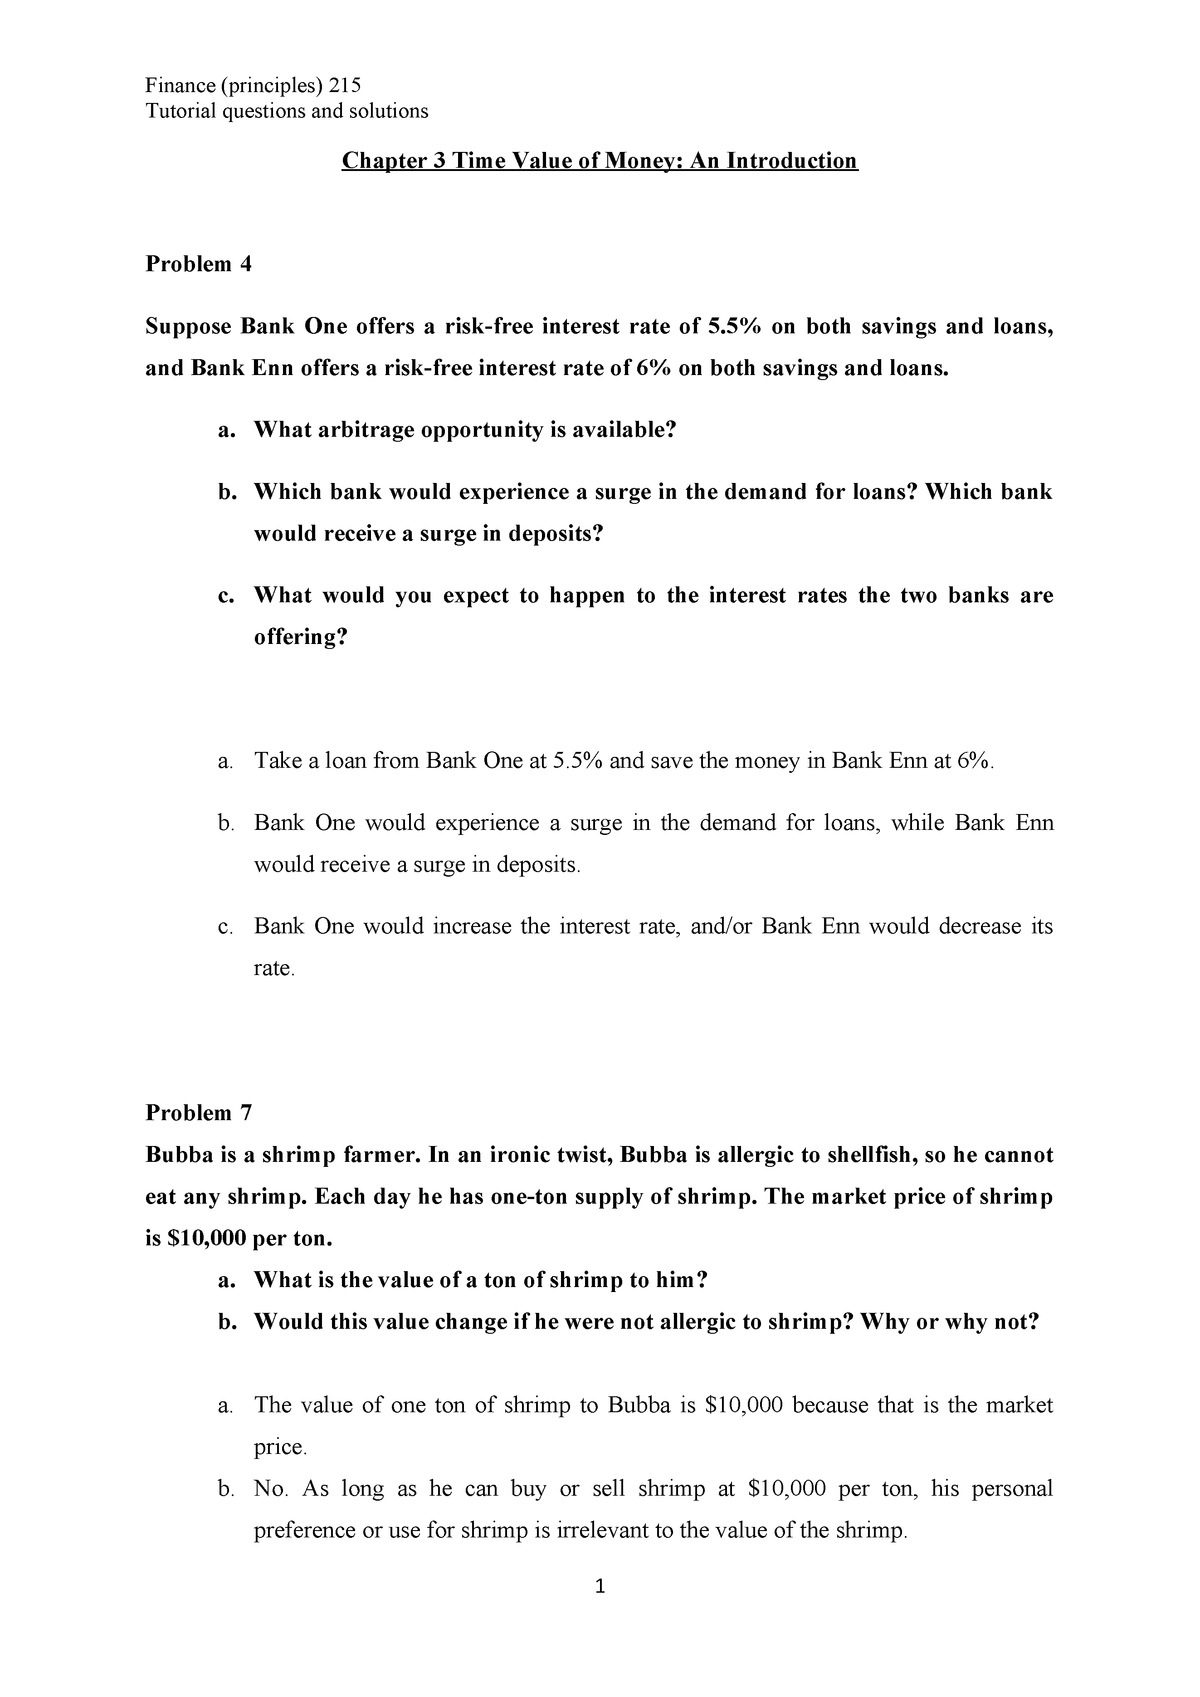 Finance (Principles): Tutorial 2 Questions & Solutions or